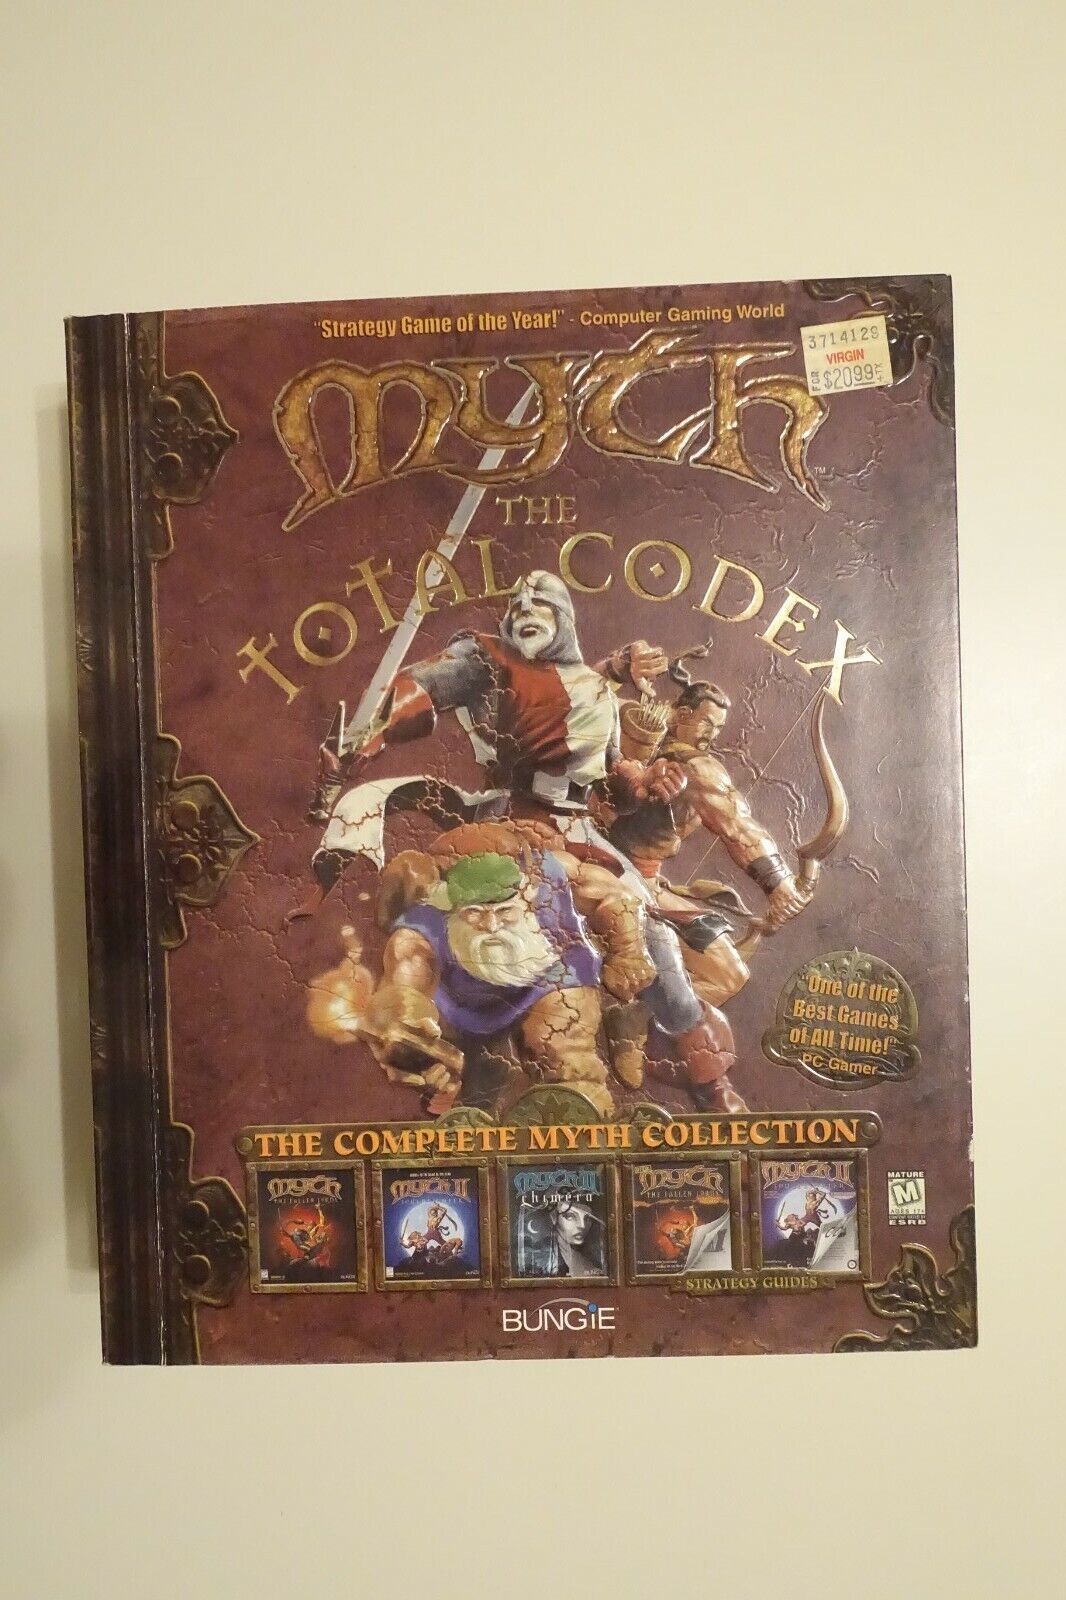 Computer Games - Myth The Total Codex PC-CDROM Computer Game 3 CD Set w/ Original Manual BIG BOX